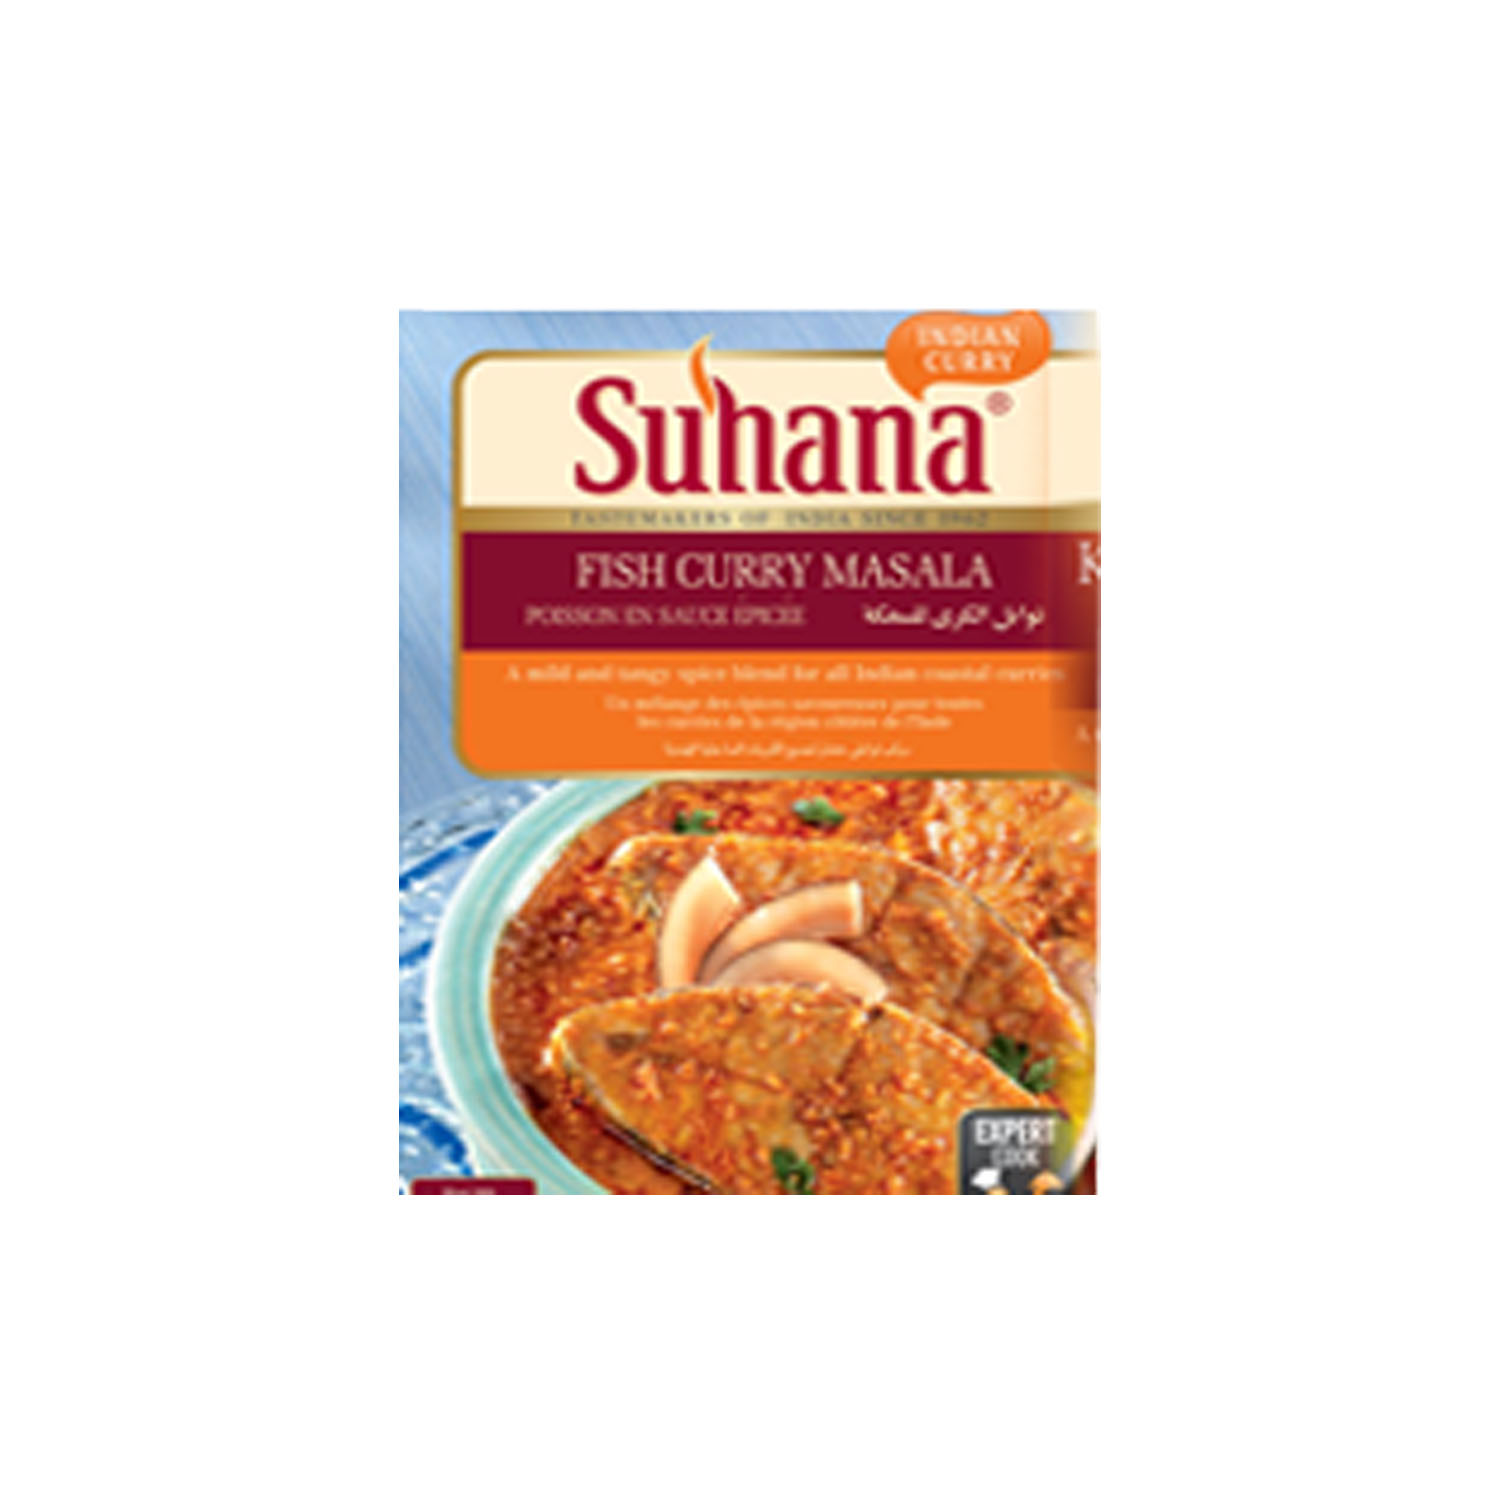 Suhana Fish Curry Masala 70g